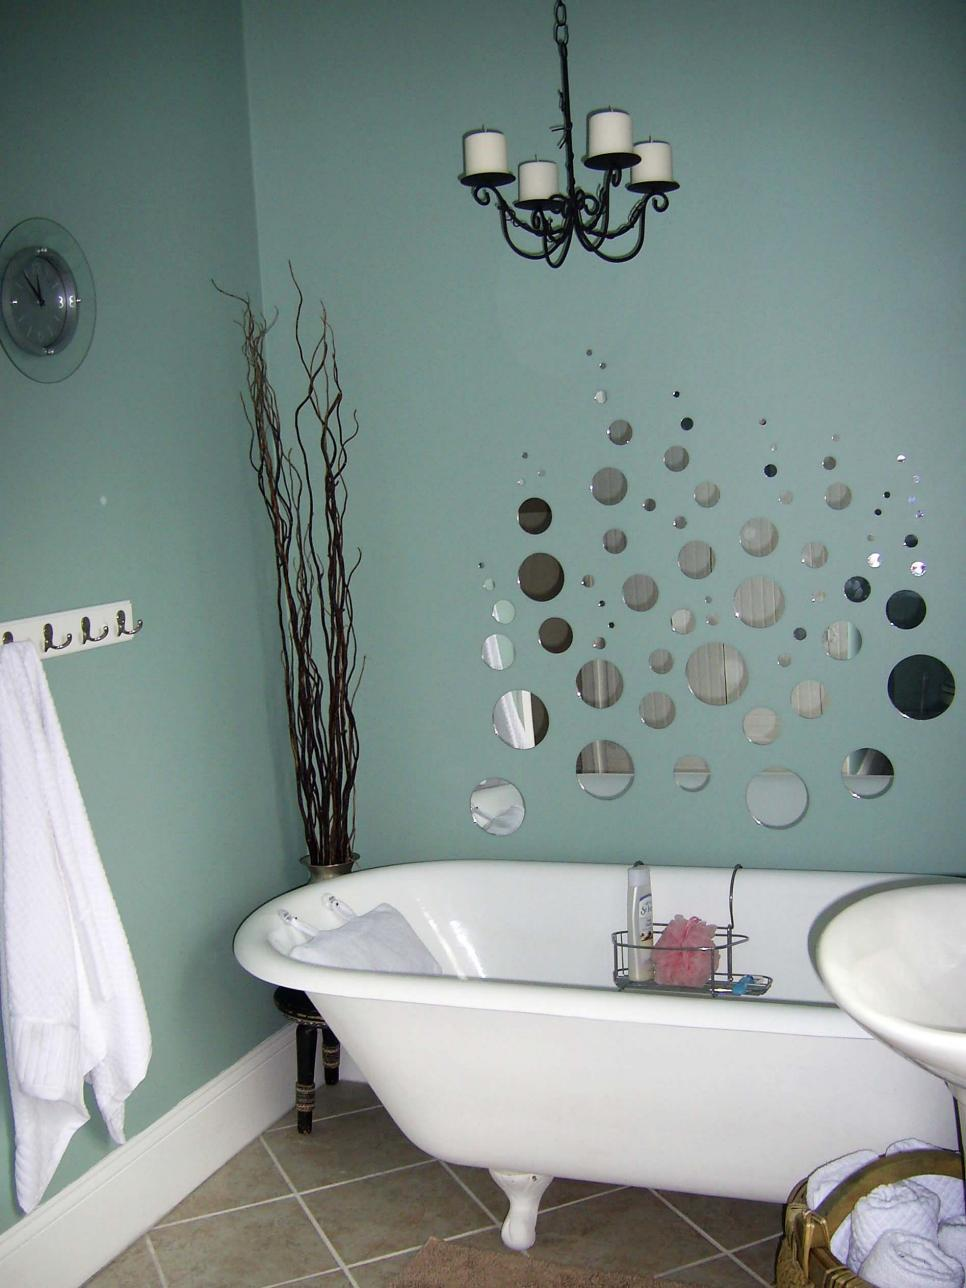 Bathrooms on a budget our 10 favorites from rate my space for Bathroom decorating themes